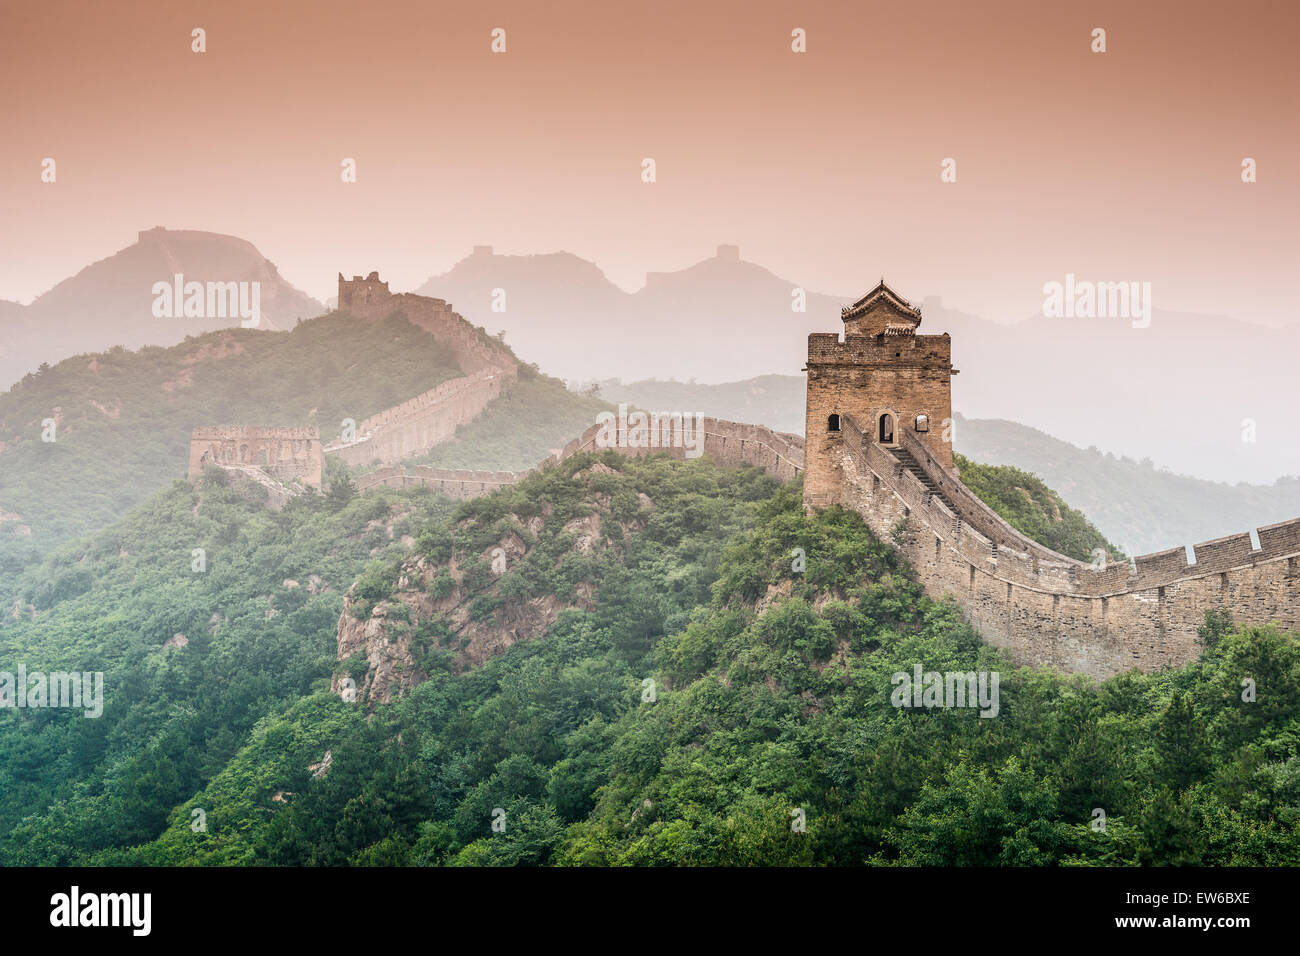 Grande Muraille de Chine, à la section de Jinshanling. Photo Stock